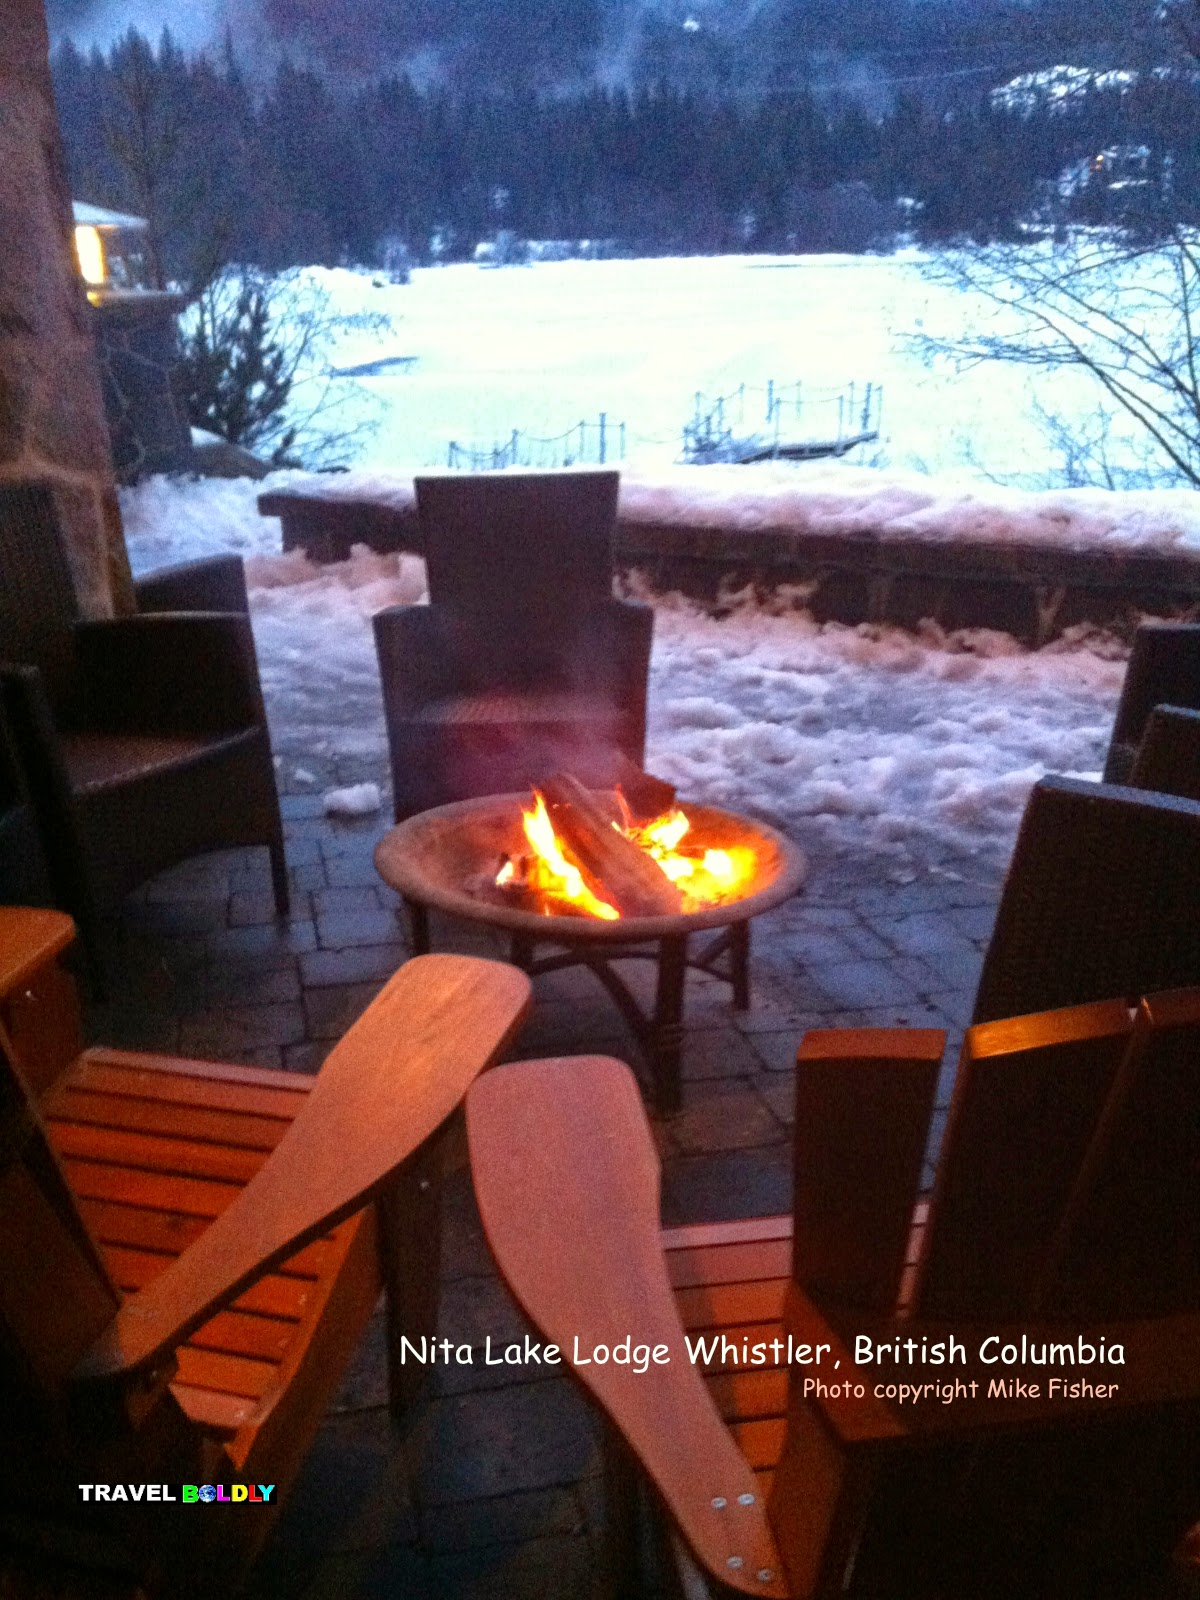 Lakeside at Nita Lake Lodge, Whistler, British Columbia - Photo Mike Fisher for Travel Boldly